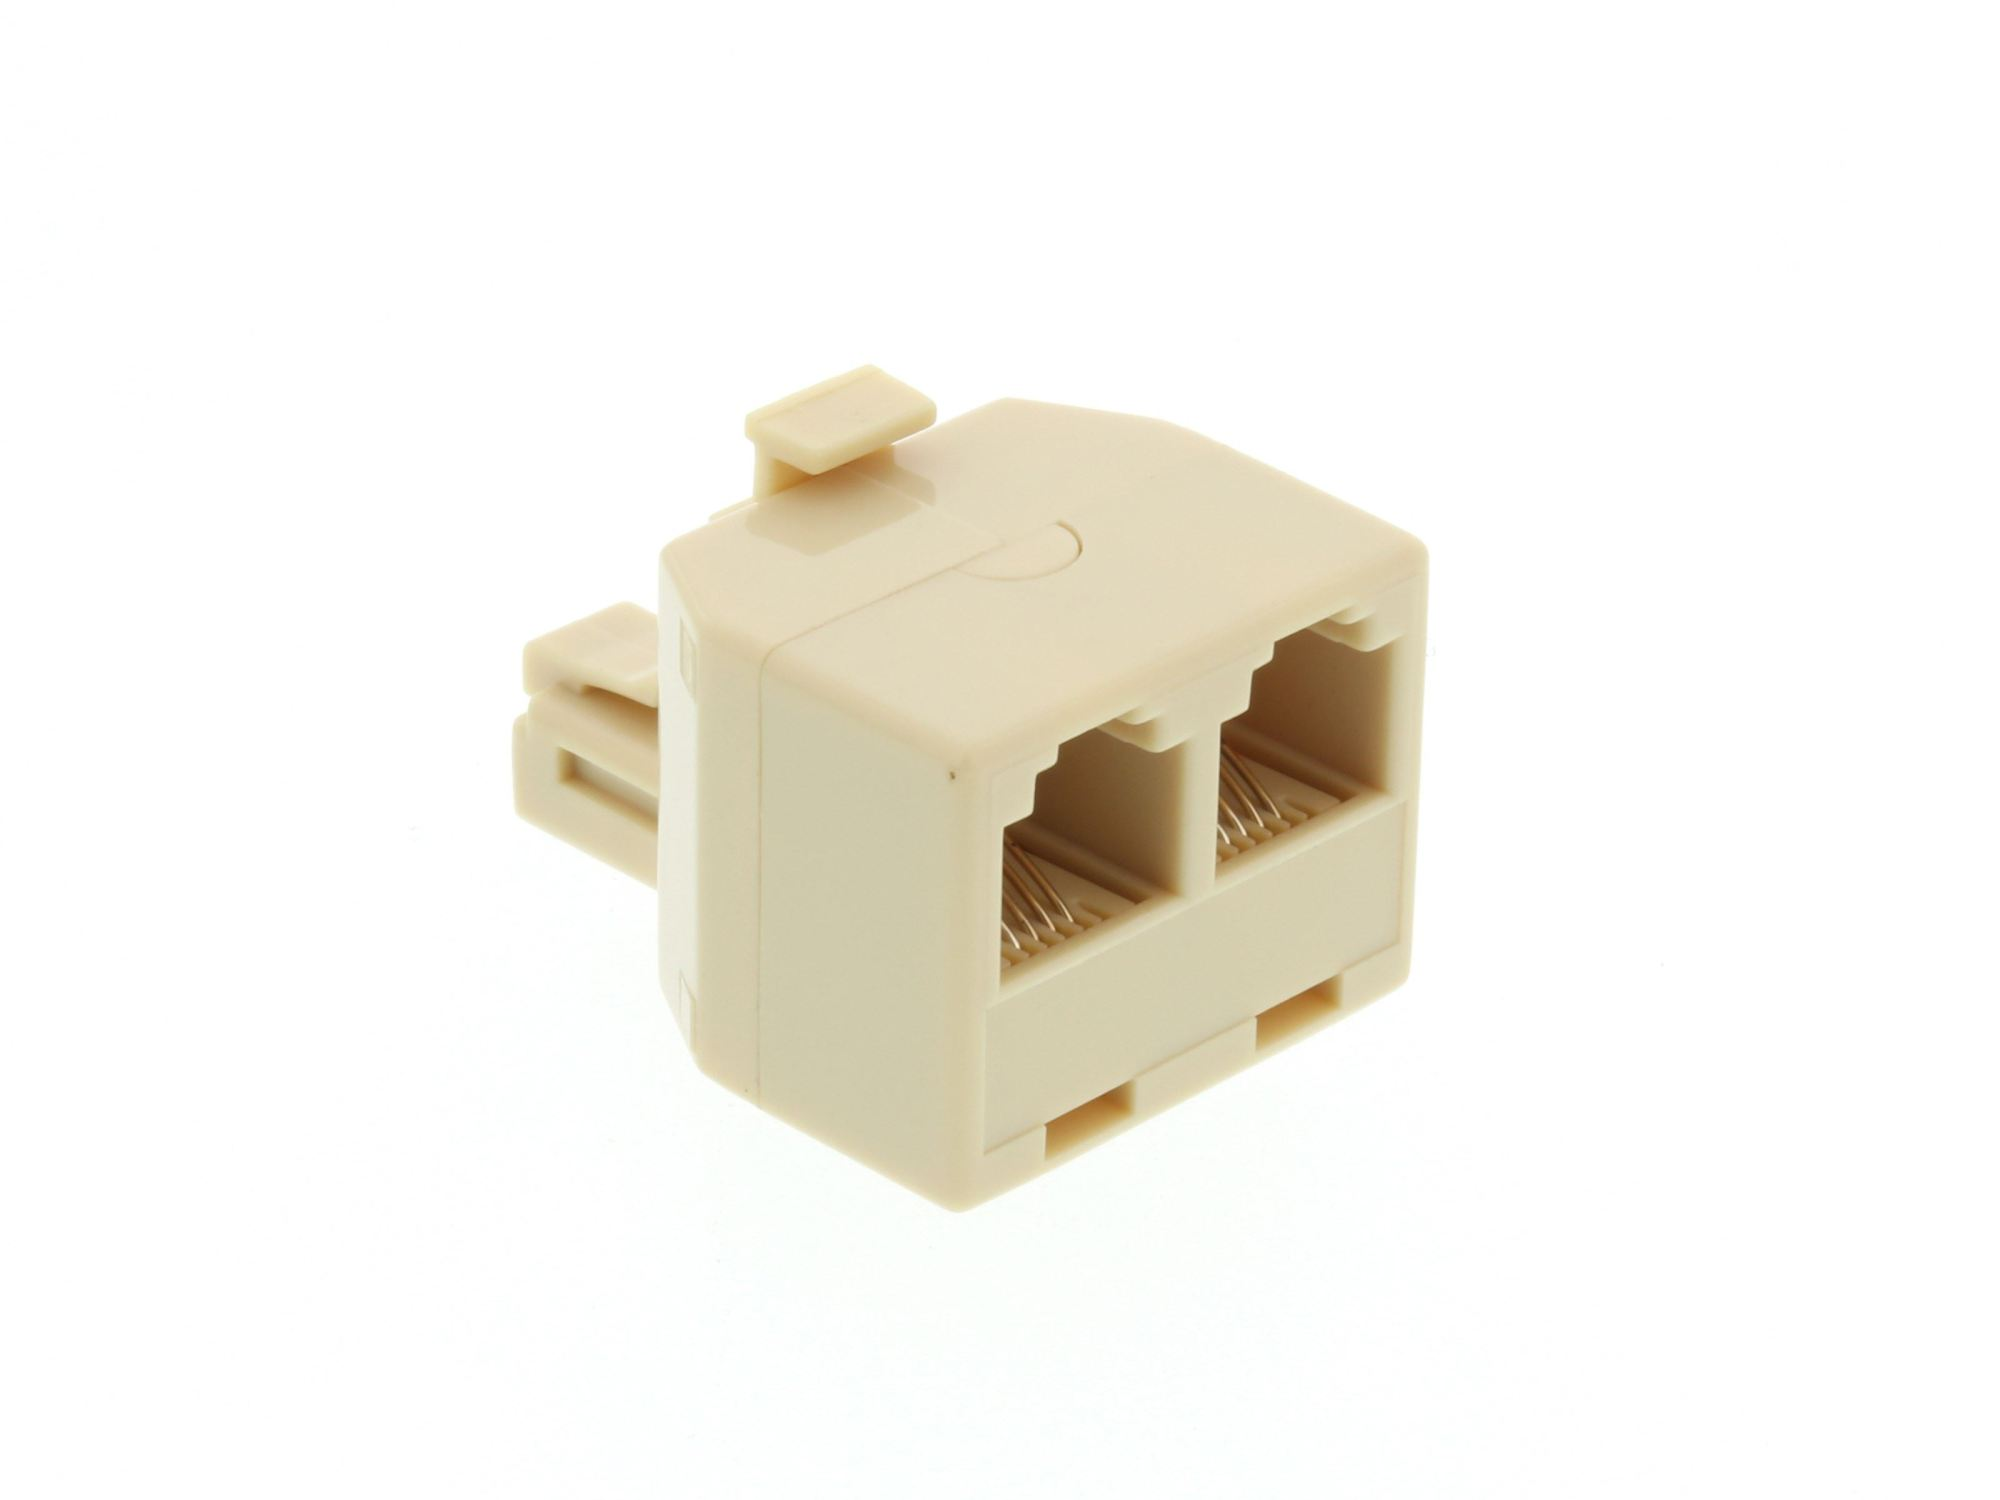 hight resolution of networx modular voice t adapter 1 male to 2 female rj11 6p4cpicture of modular voice